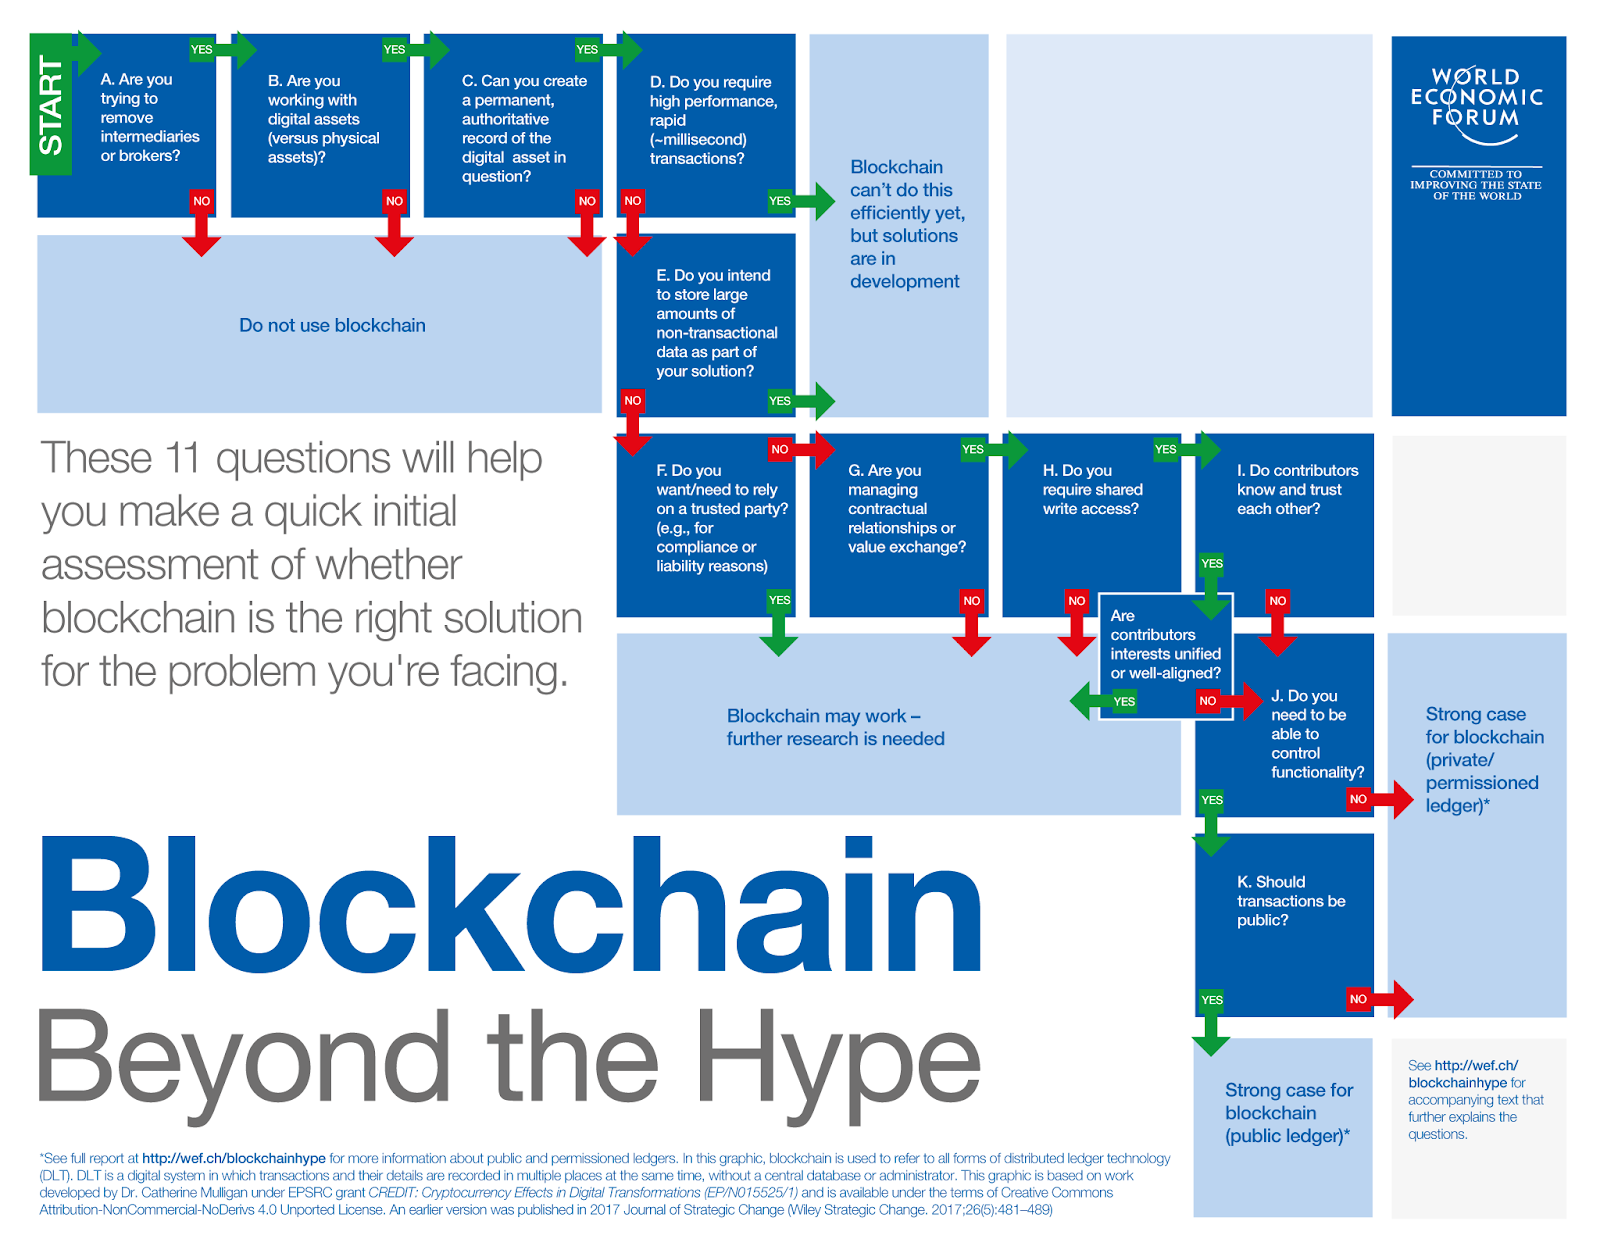 WEF: Blockchain beyond the hype    https://www.weforum.org/agenda/2018/04/questions-blockchain-toolkit-right-for-business